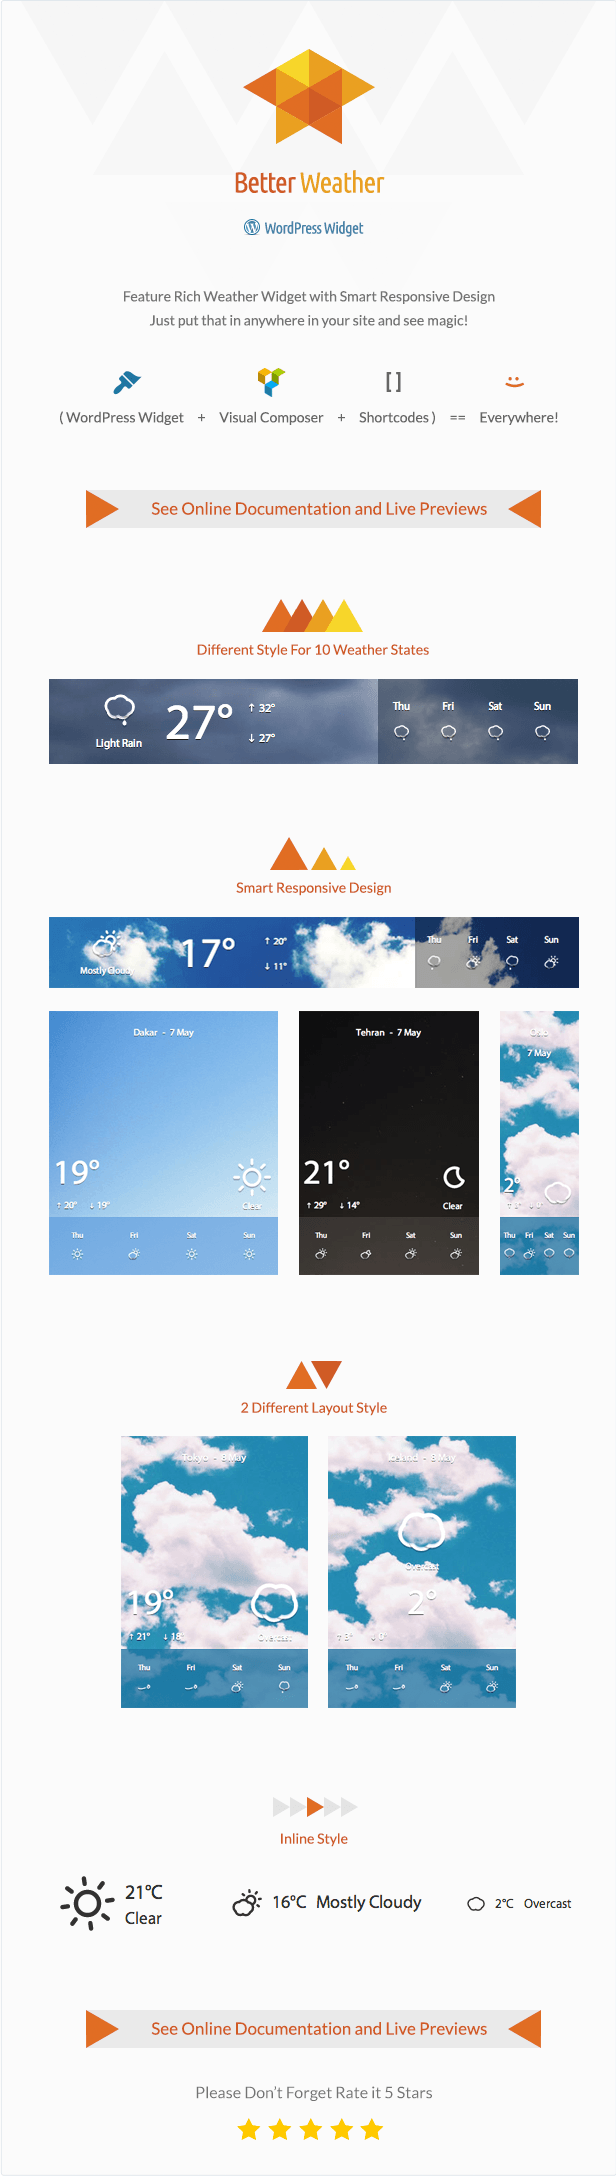 Better Weather - WordPress and Visual Composer Widget 4